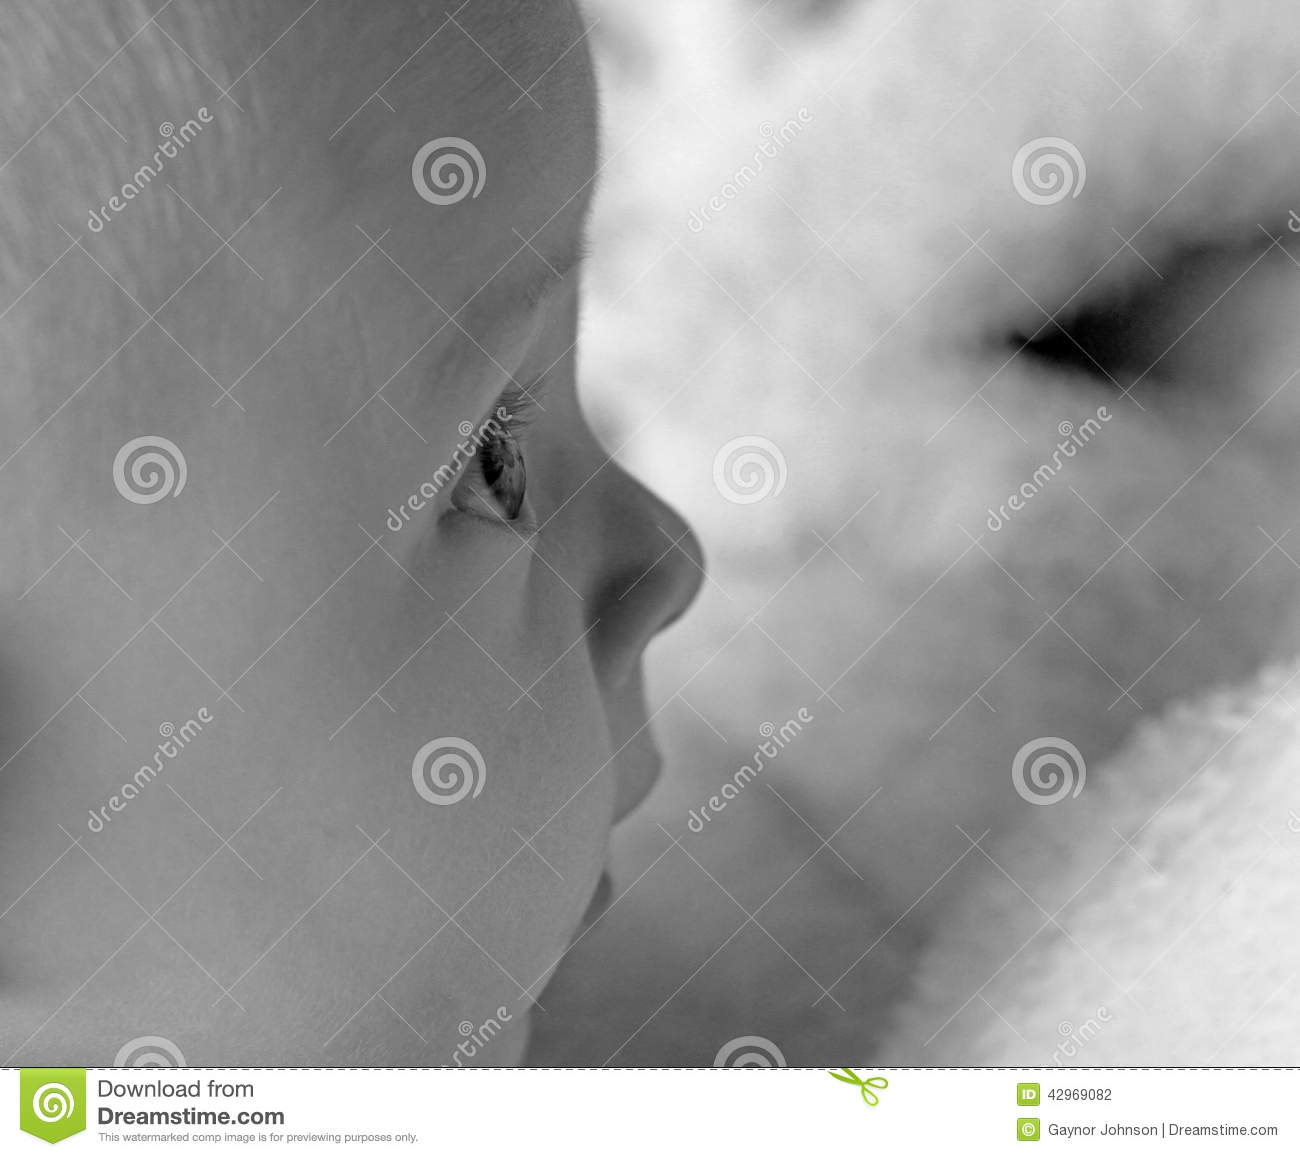 Monochrome baby side view abstract